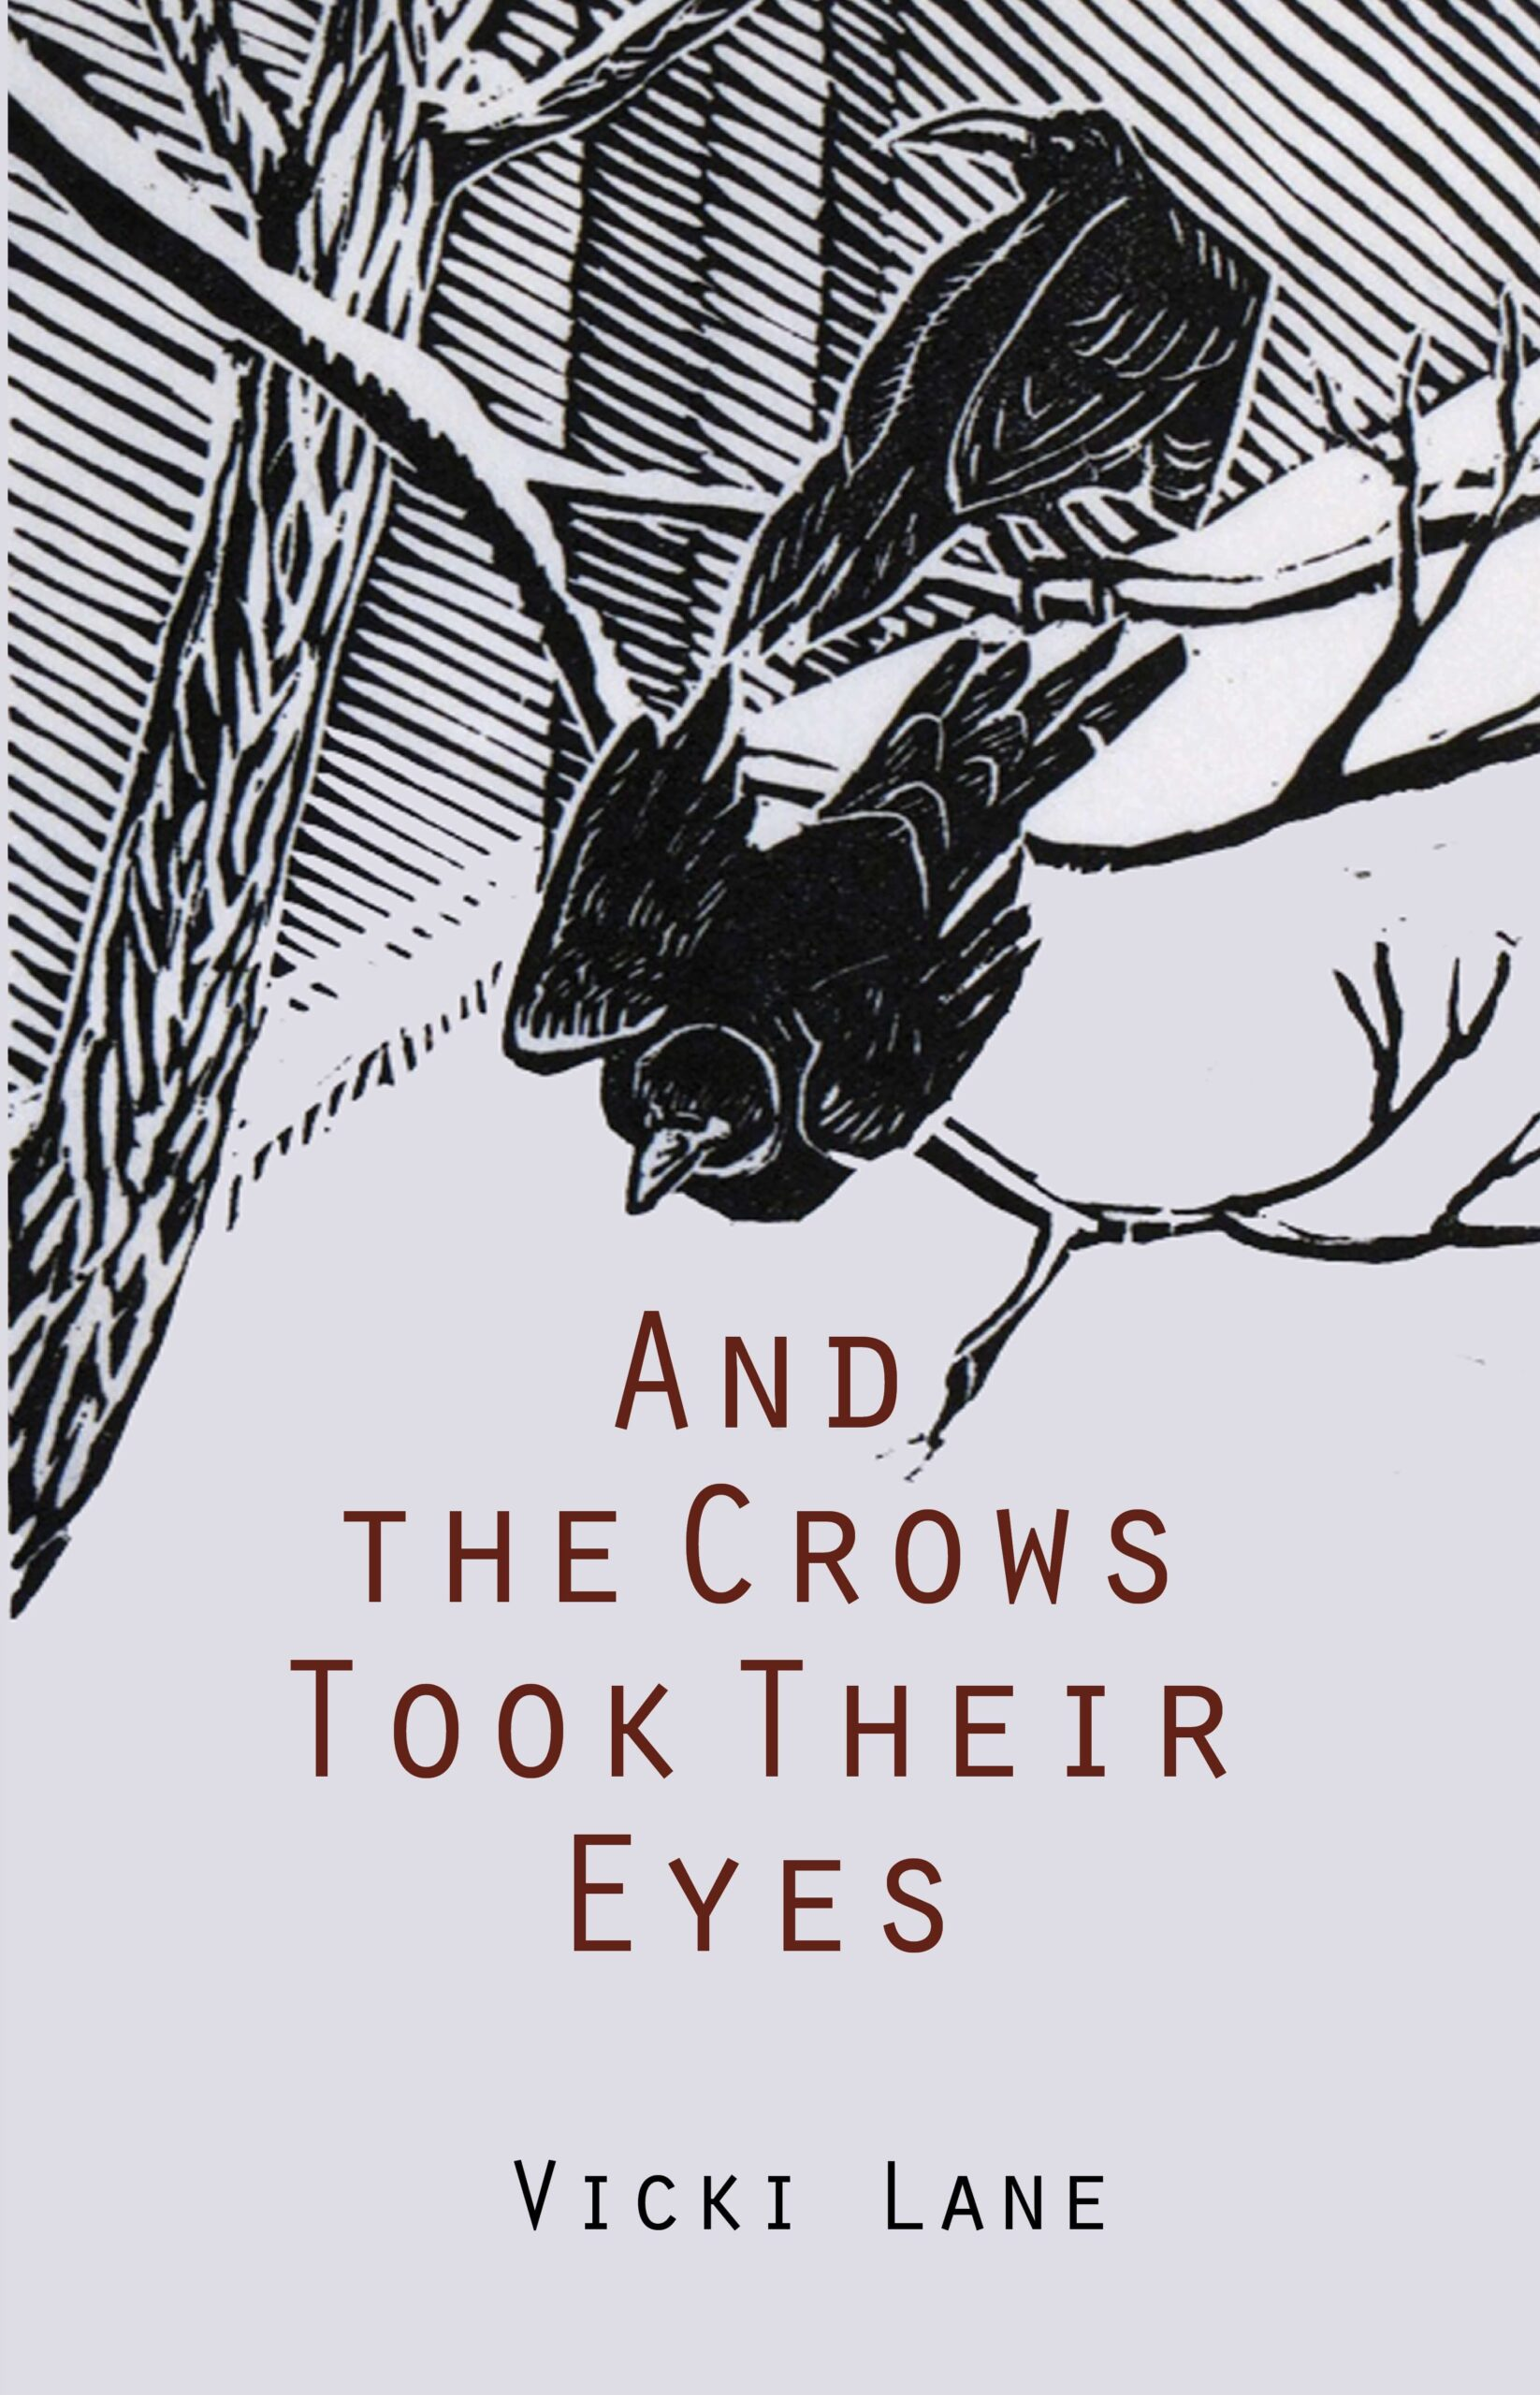 And the Crows Took Their Eyes cover